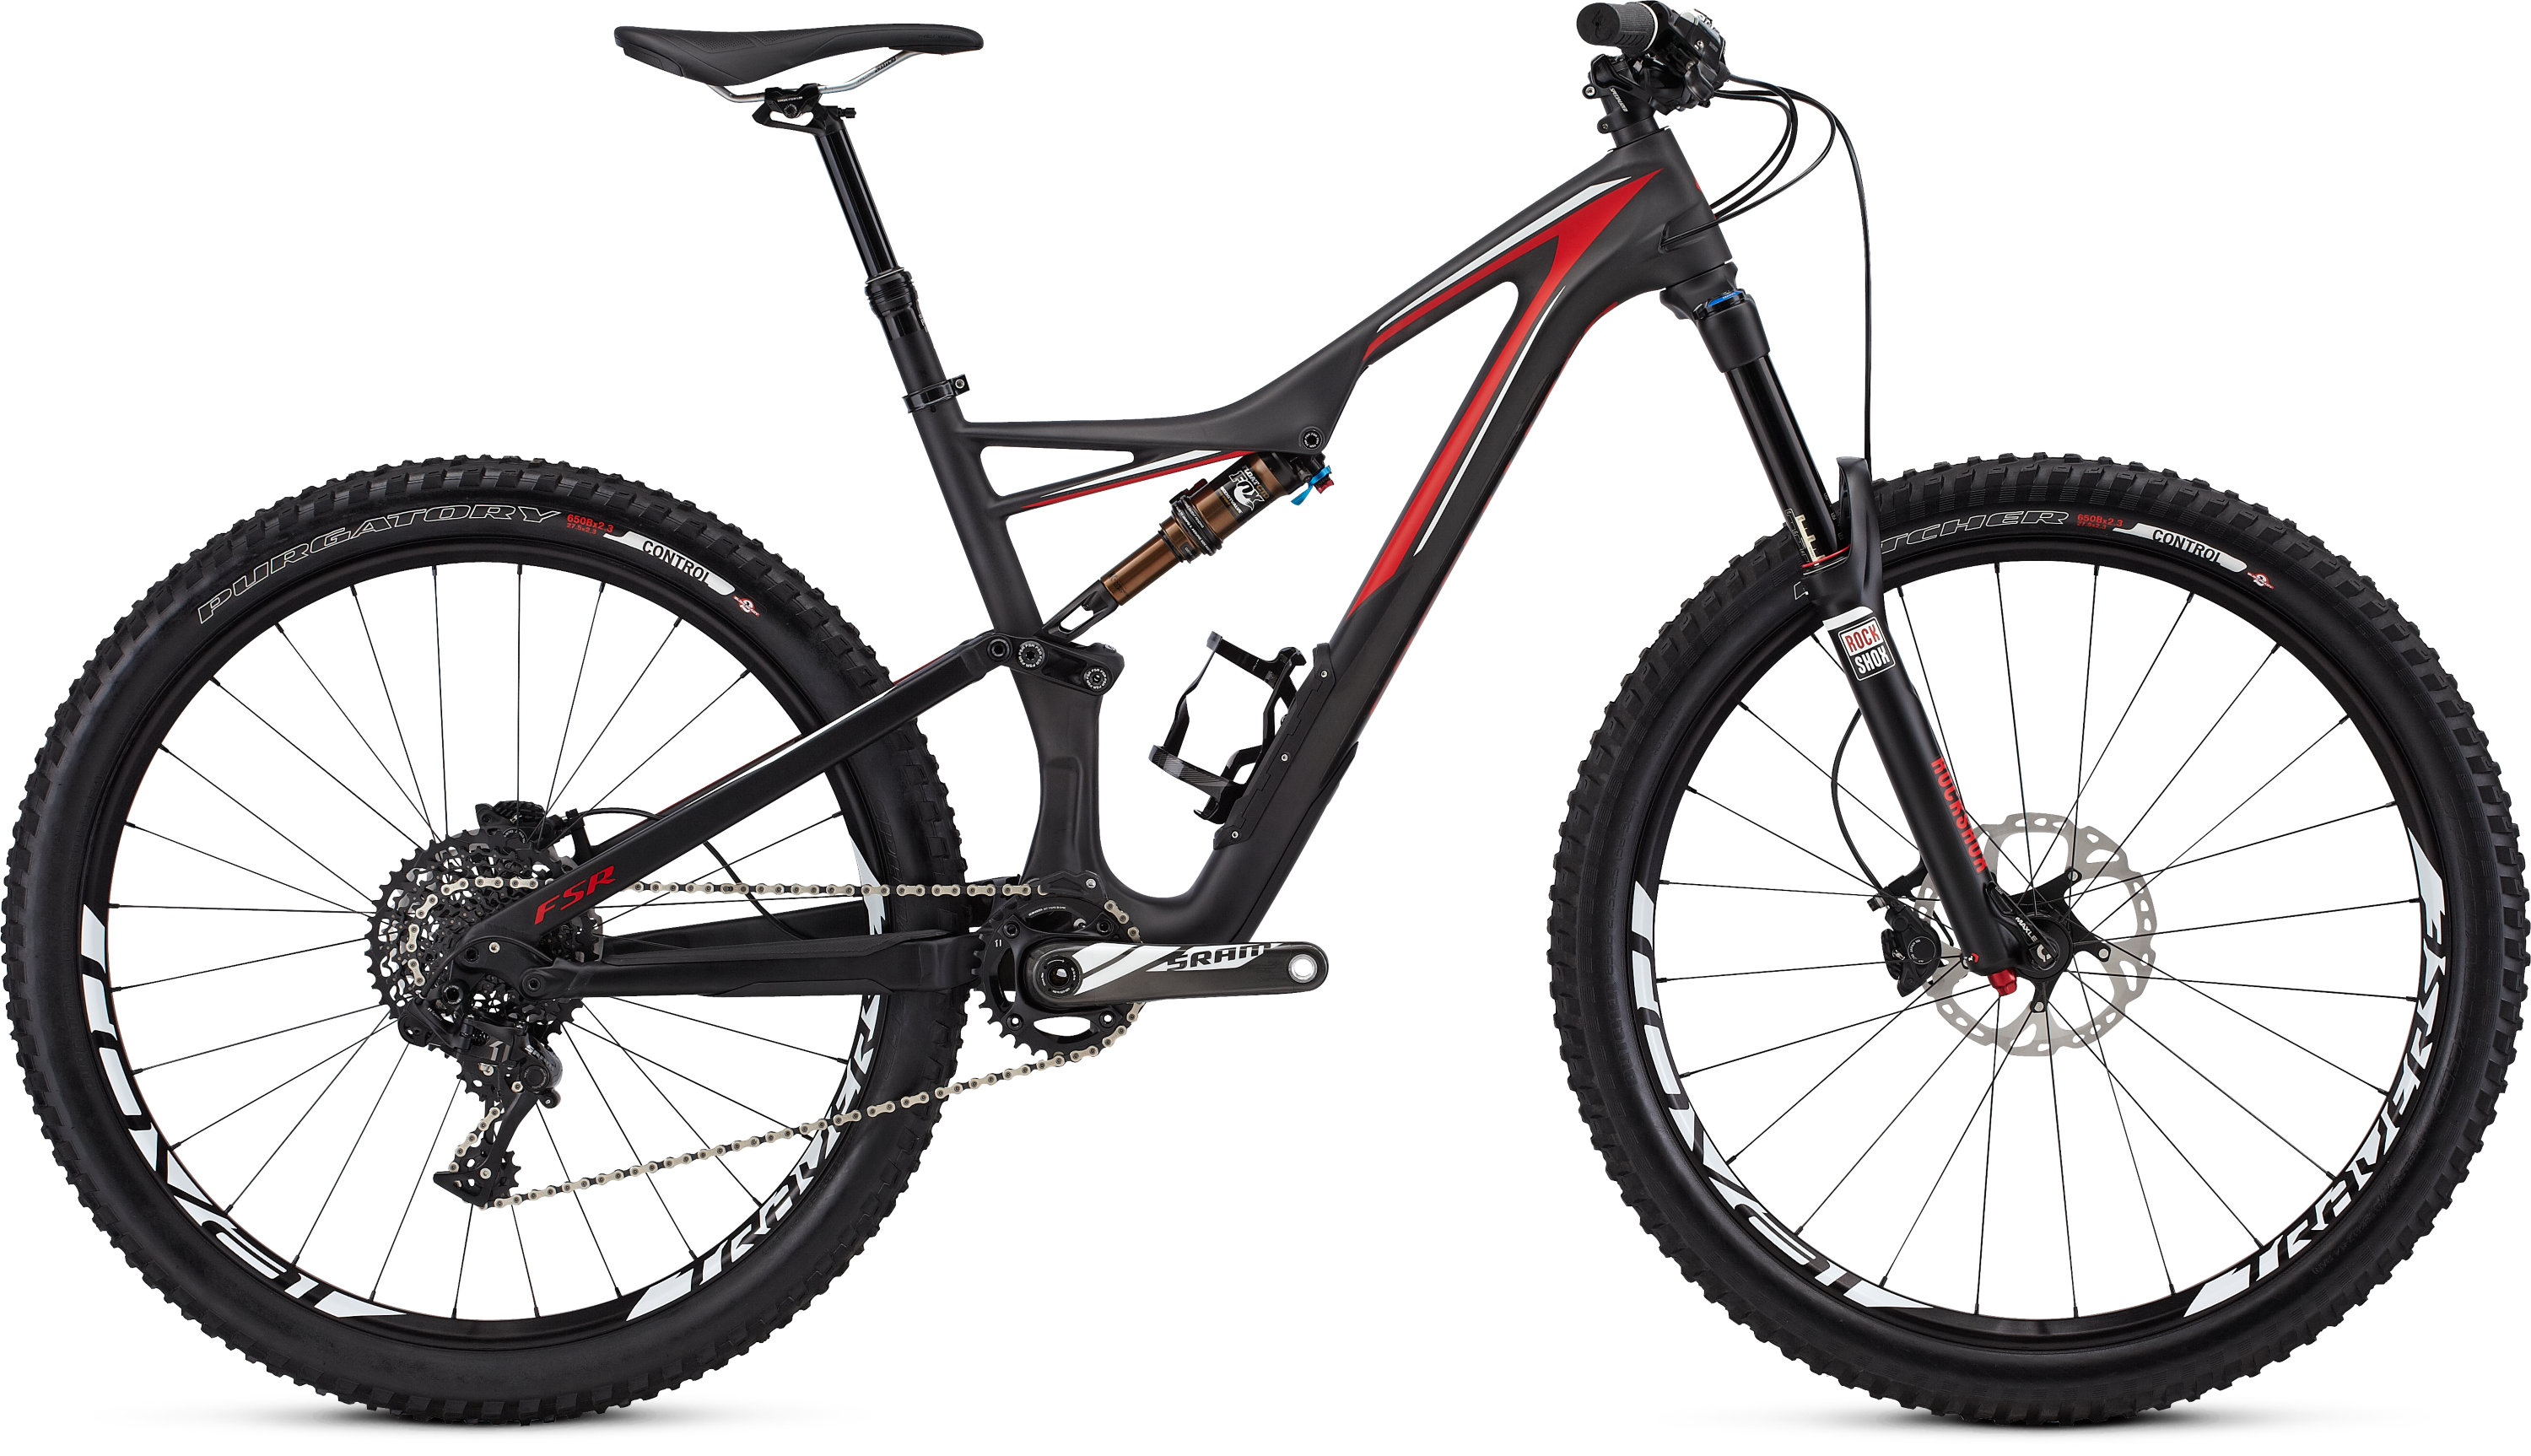 SPECIALIZED SJ FSR EXPERT CARBON 650B CARB/RED/WHT S - schneider-sports